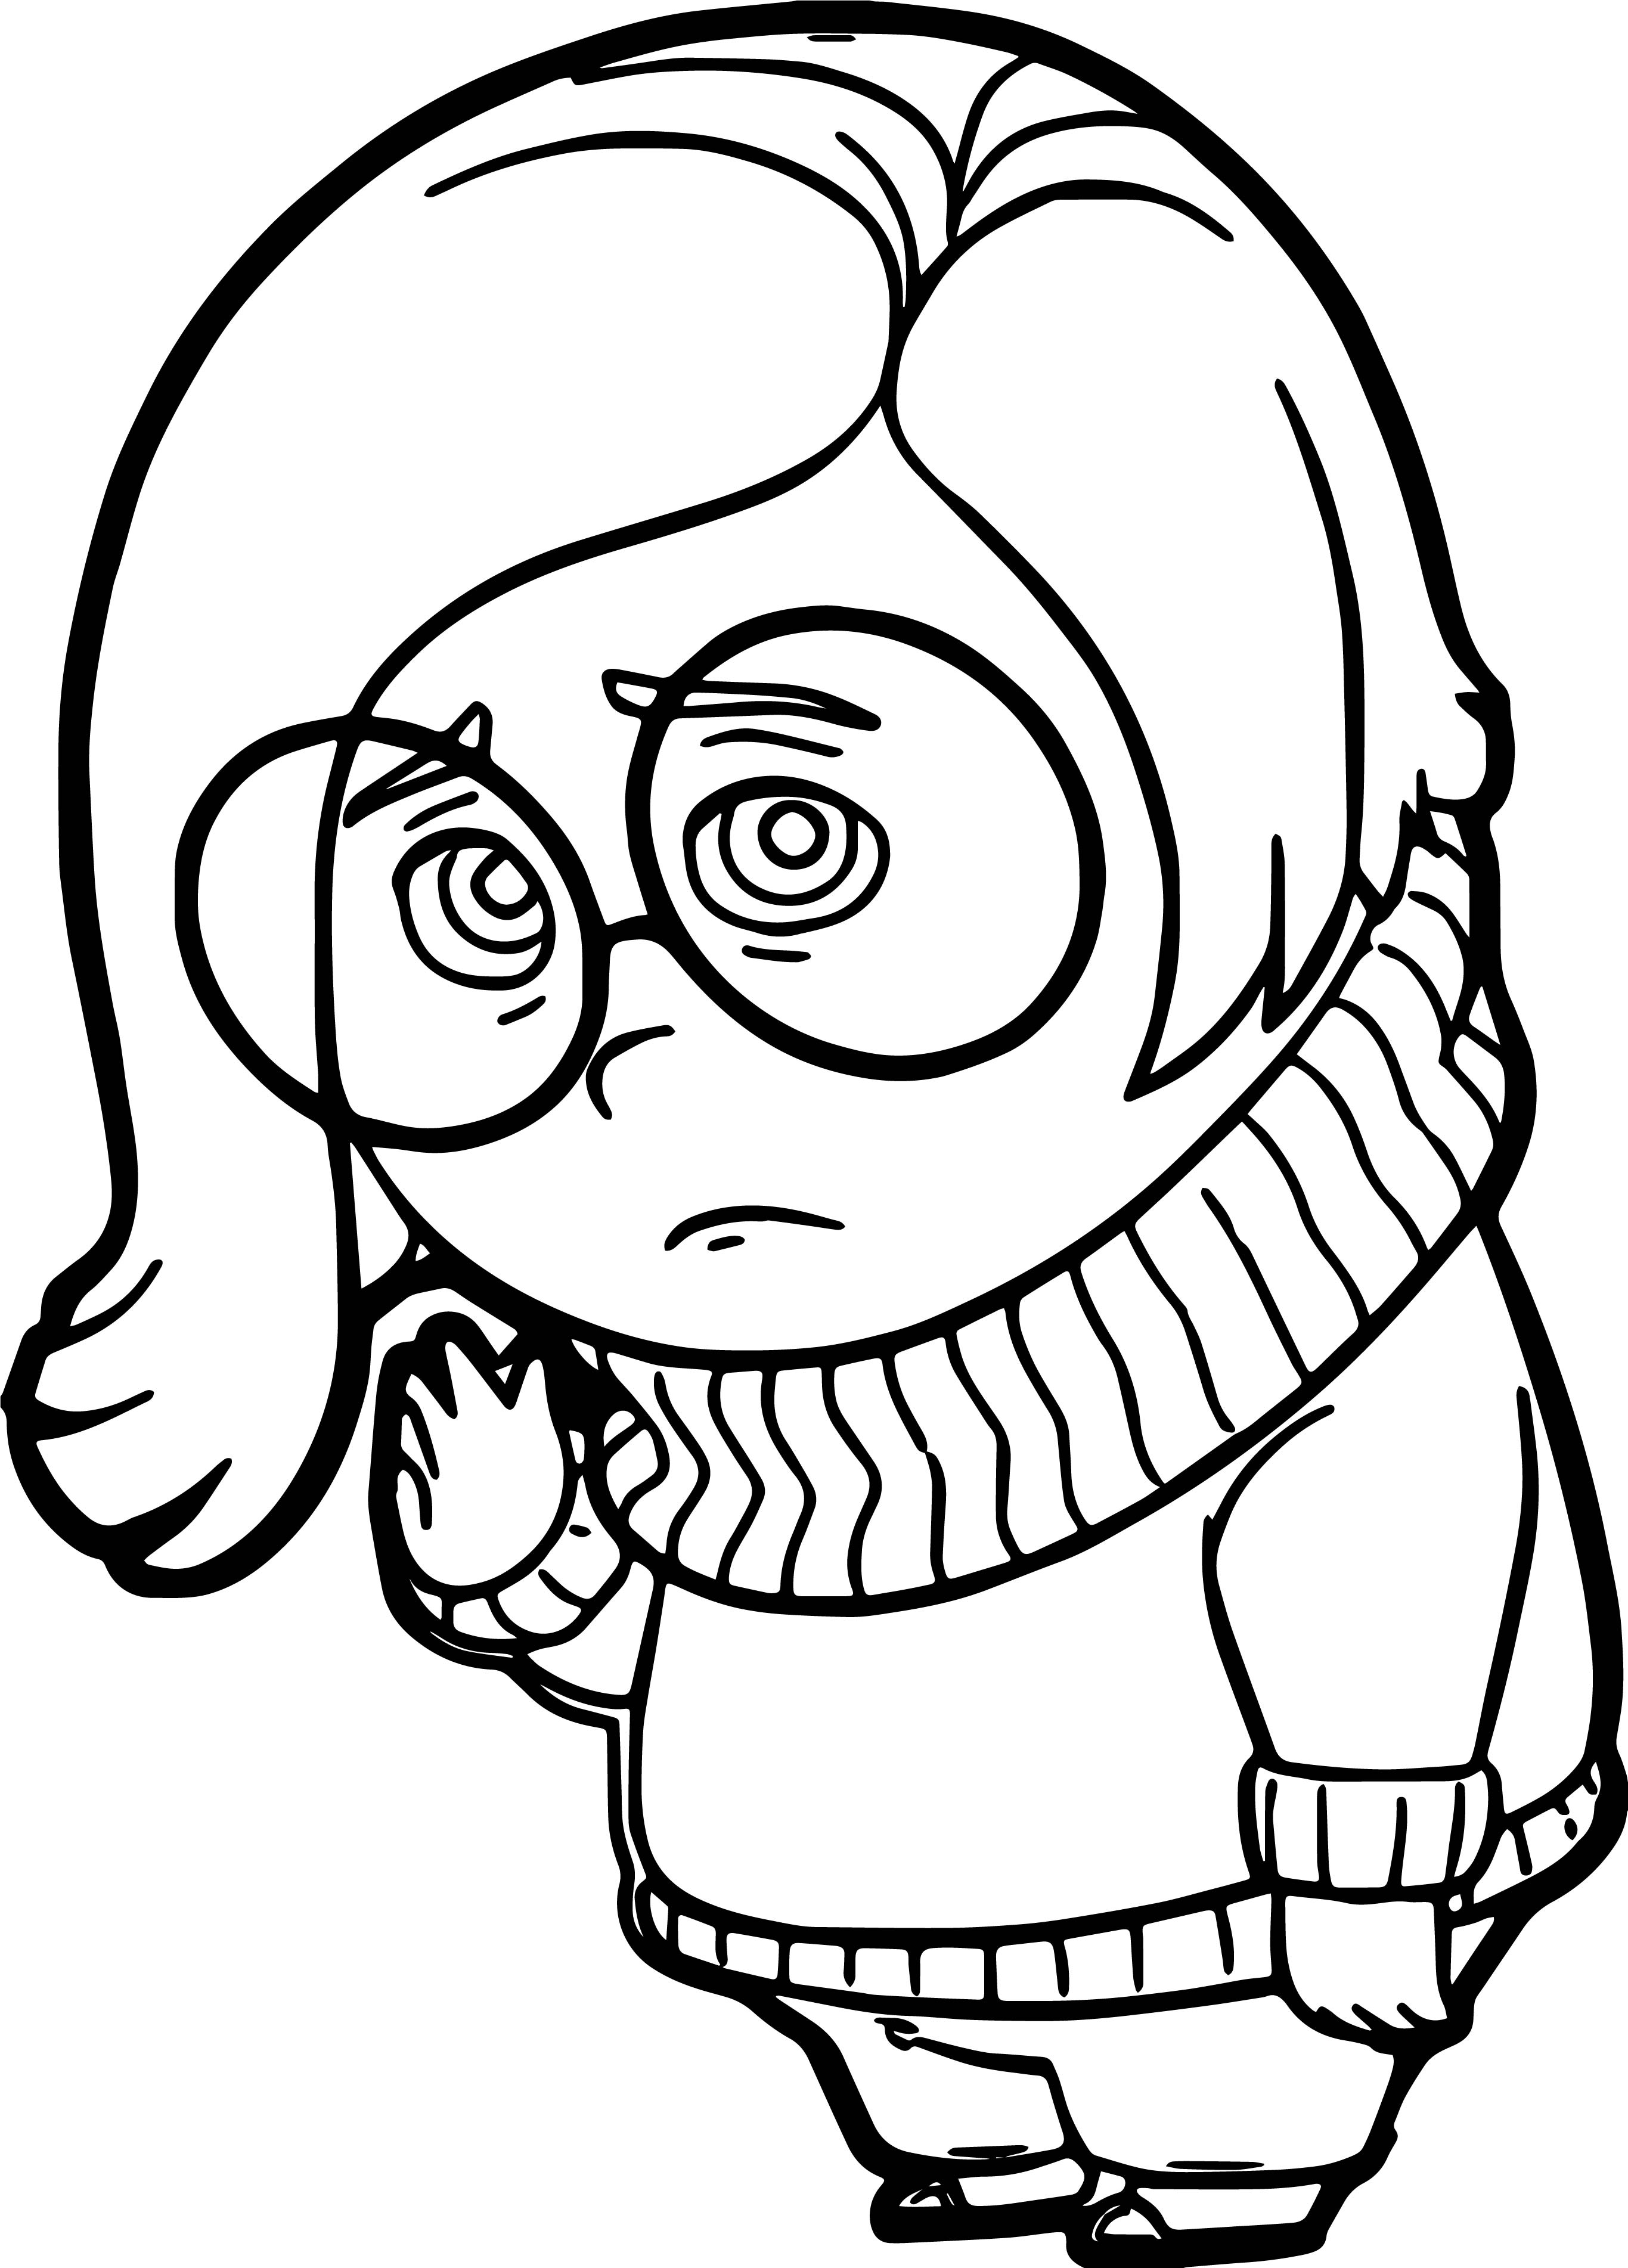 Sadness Me Coloring Pages